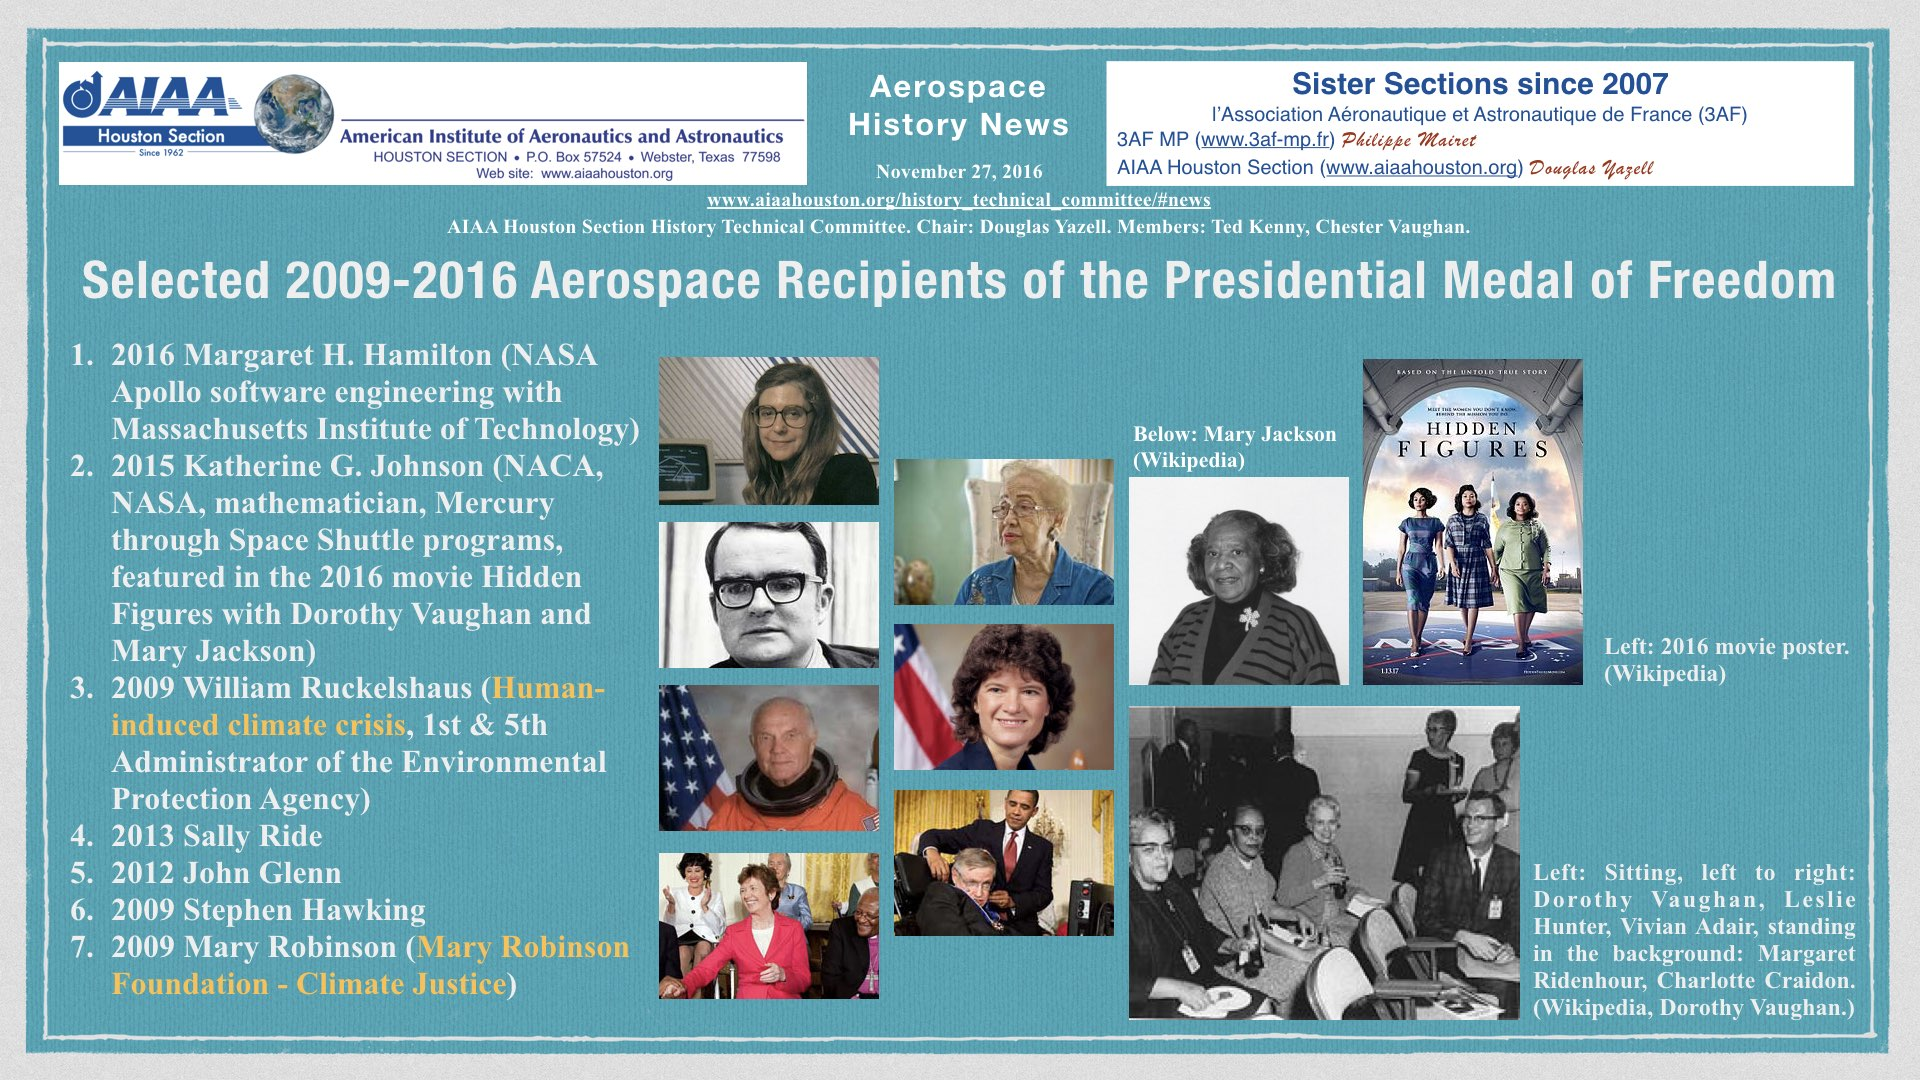 Above: Selected 2009-2016 Recipients of the Presidential Medal of Freedom. (Click to zoom.)